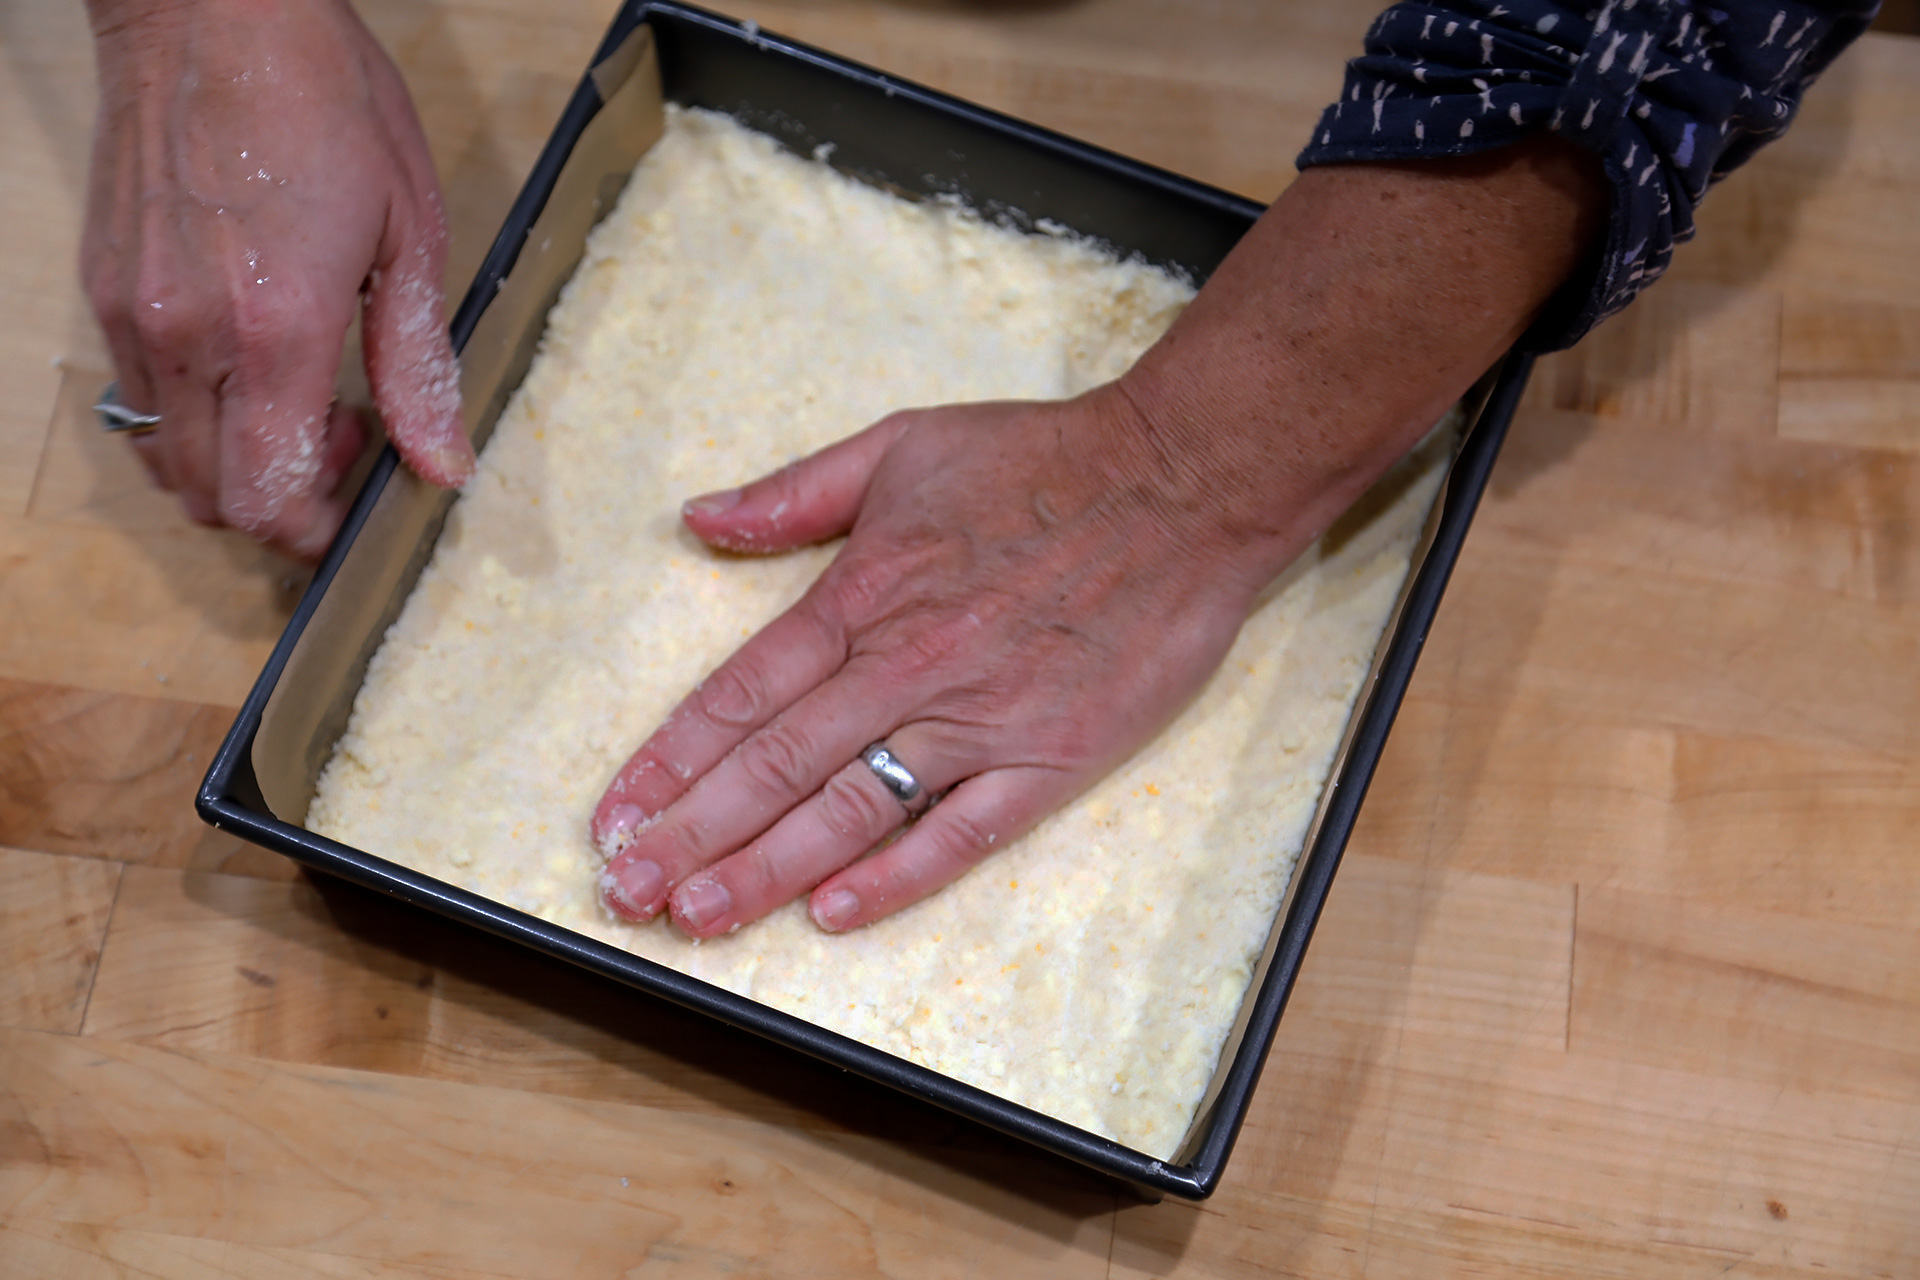 Press the dough into the prepared cake pan. Then sprinkle with 1 tbsp sugar.